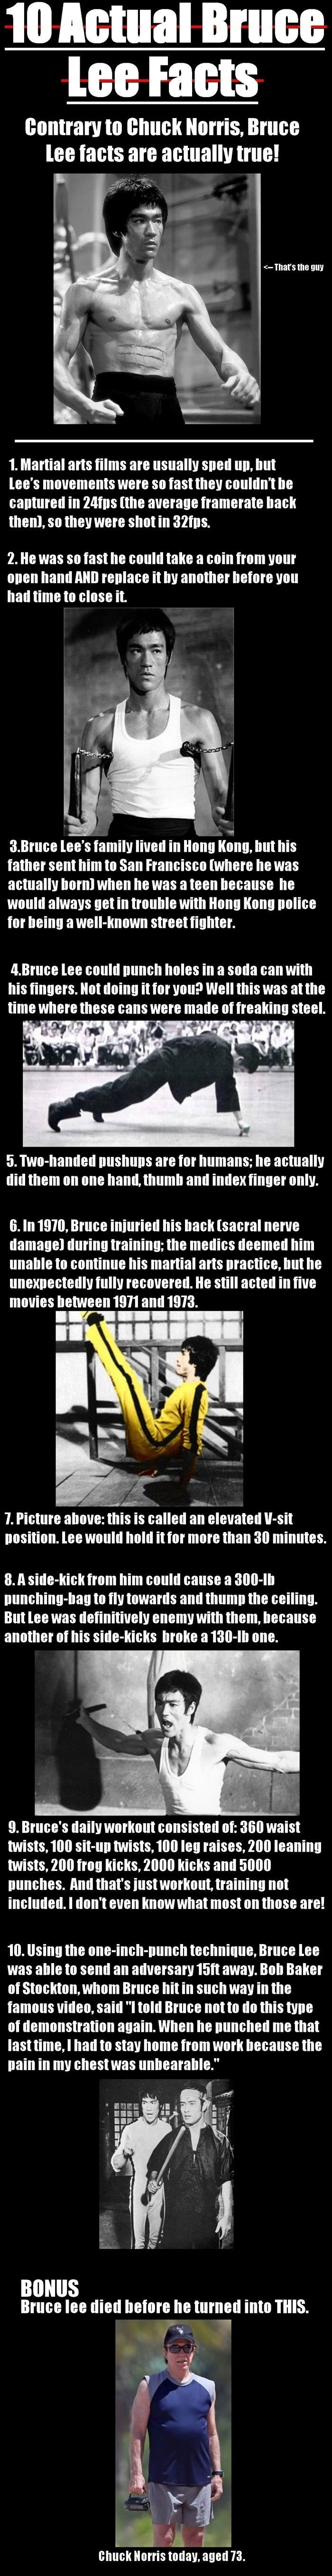 Bruce Lee  facts.  I'm such a tomboy I was massively impressed by everything in this pin